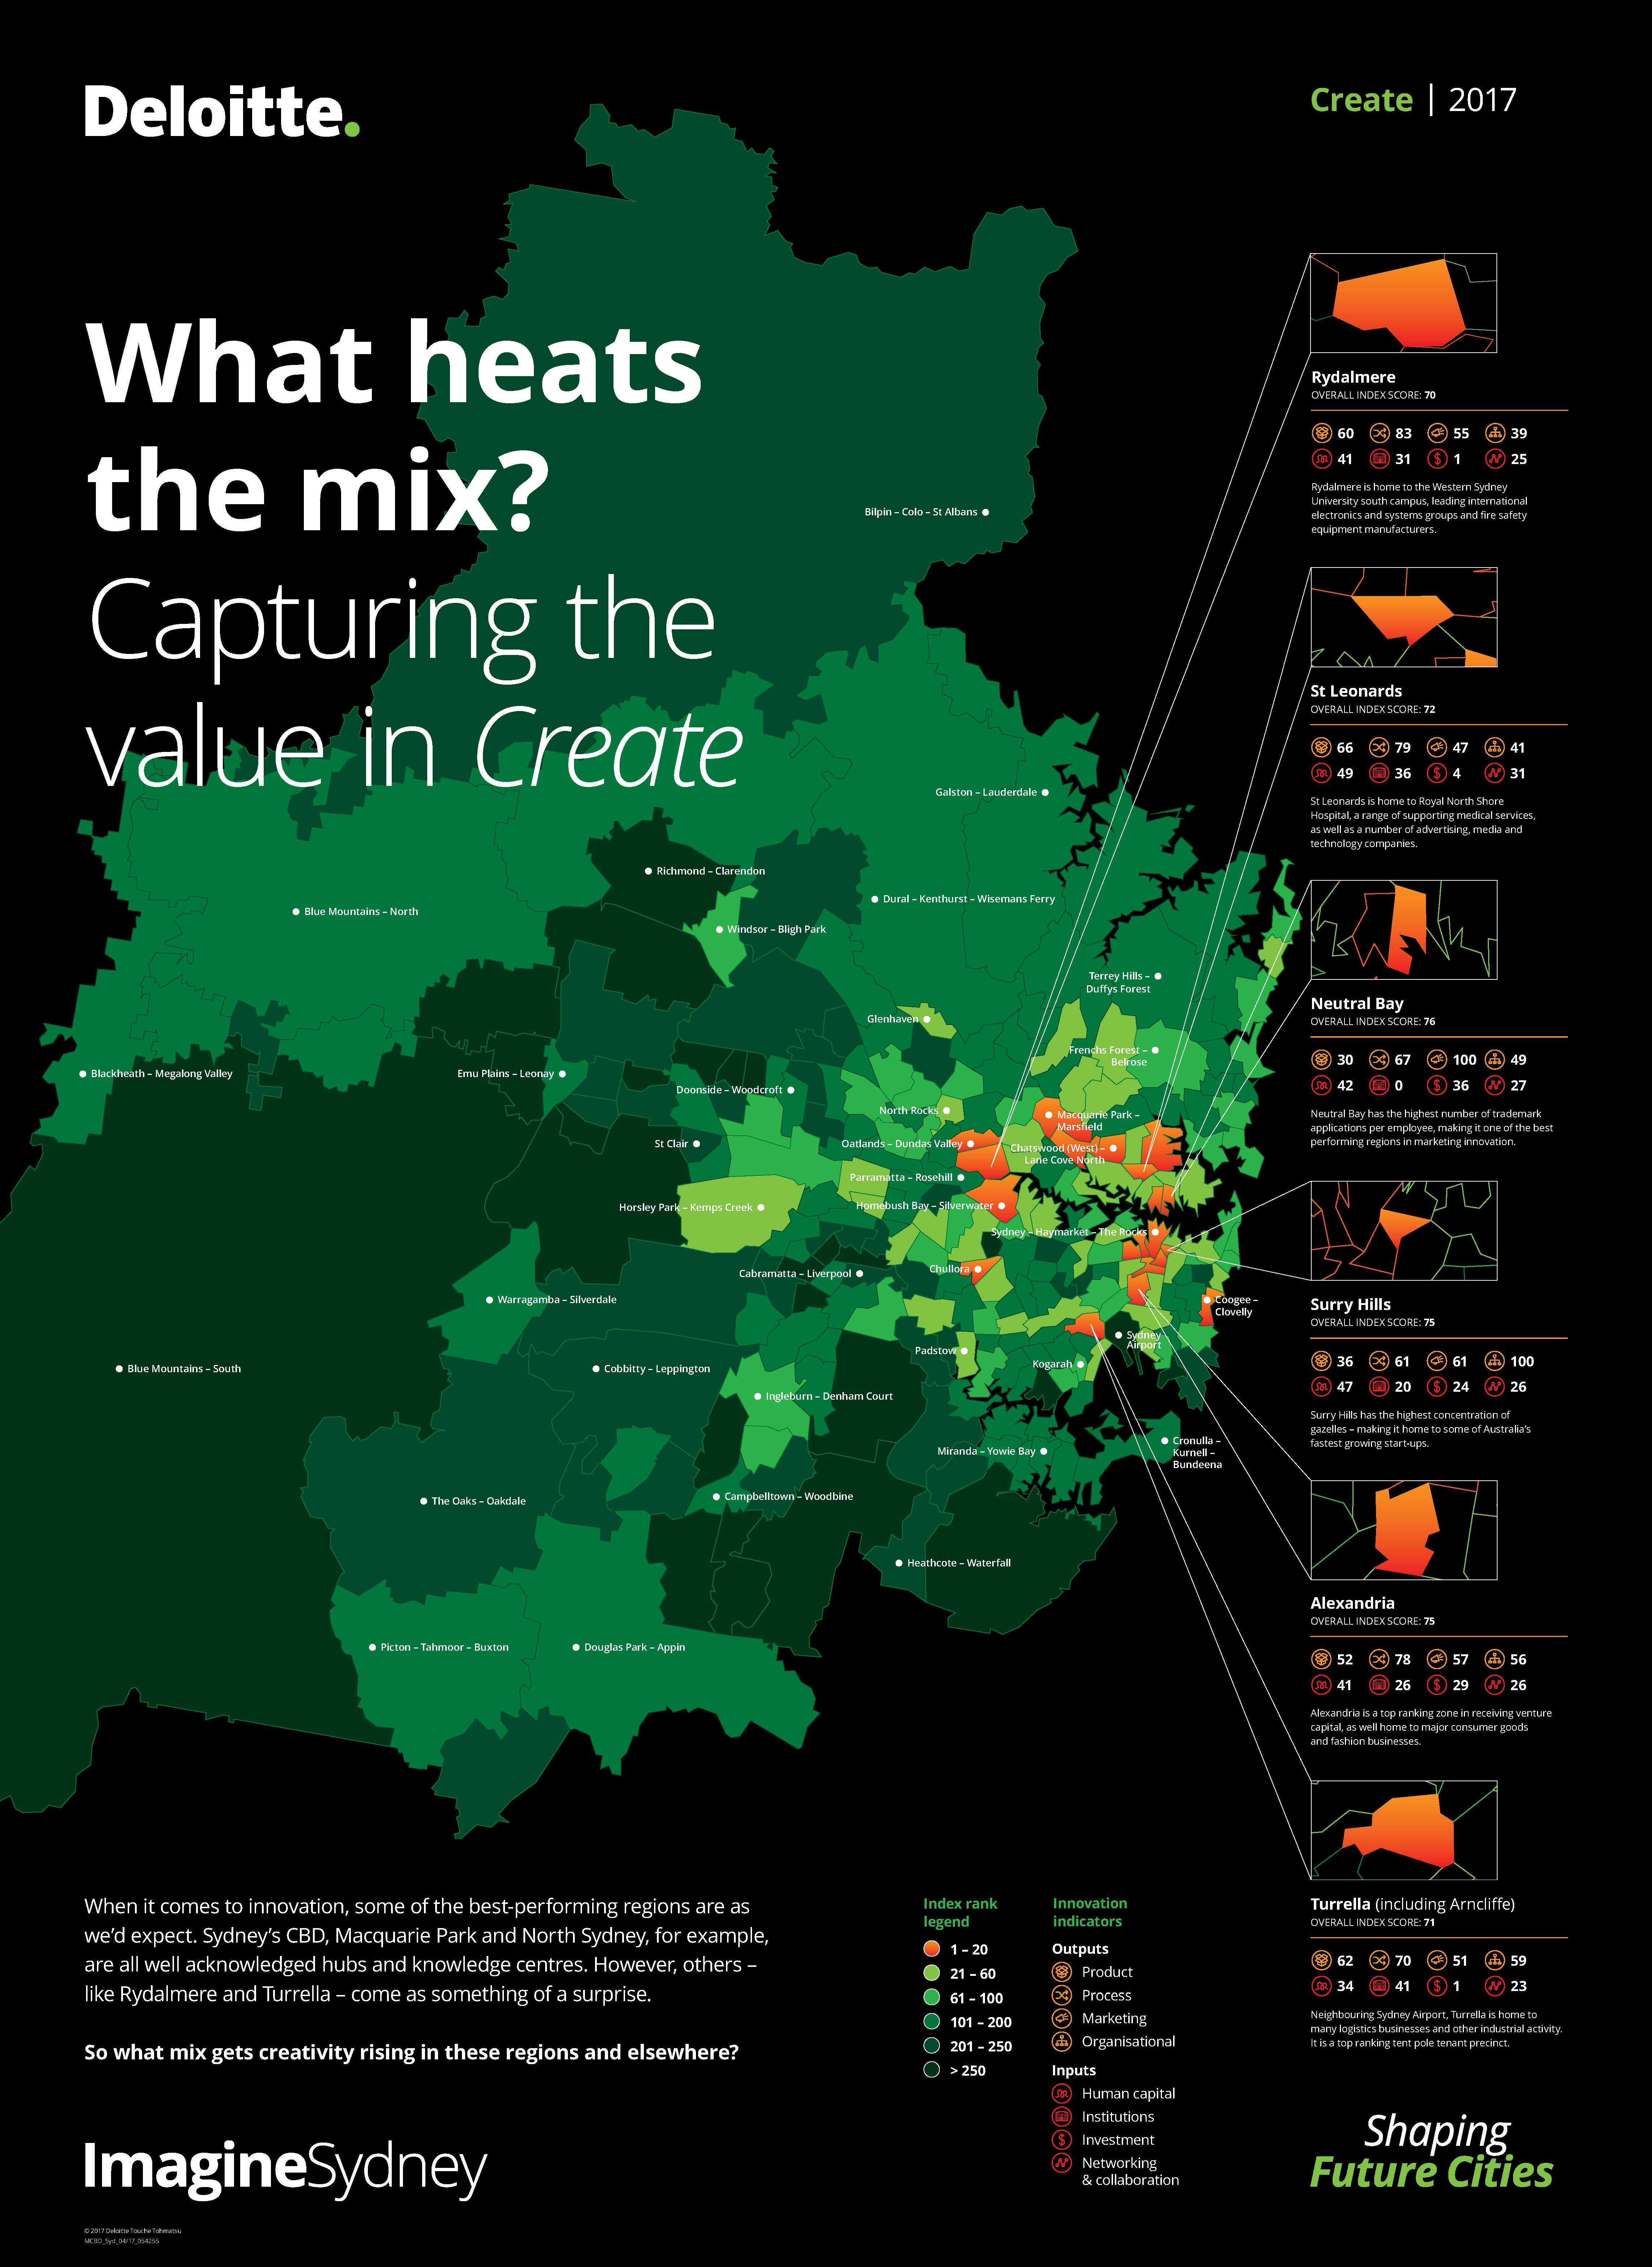 Download The Infographic To Find Out What Mix Gets Creativity Rising In Some Of Sydney S Regions